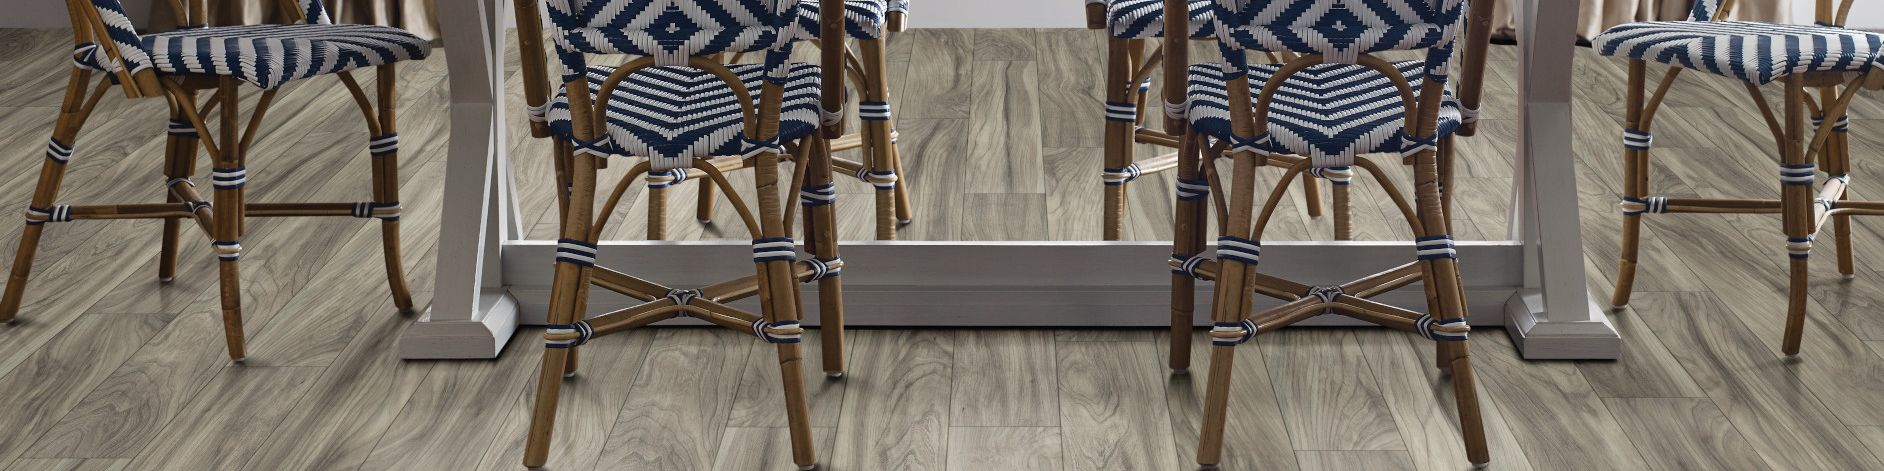 laminate-repel-terrene-sl443-05040-sand-dune-dinning-room-2020